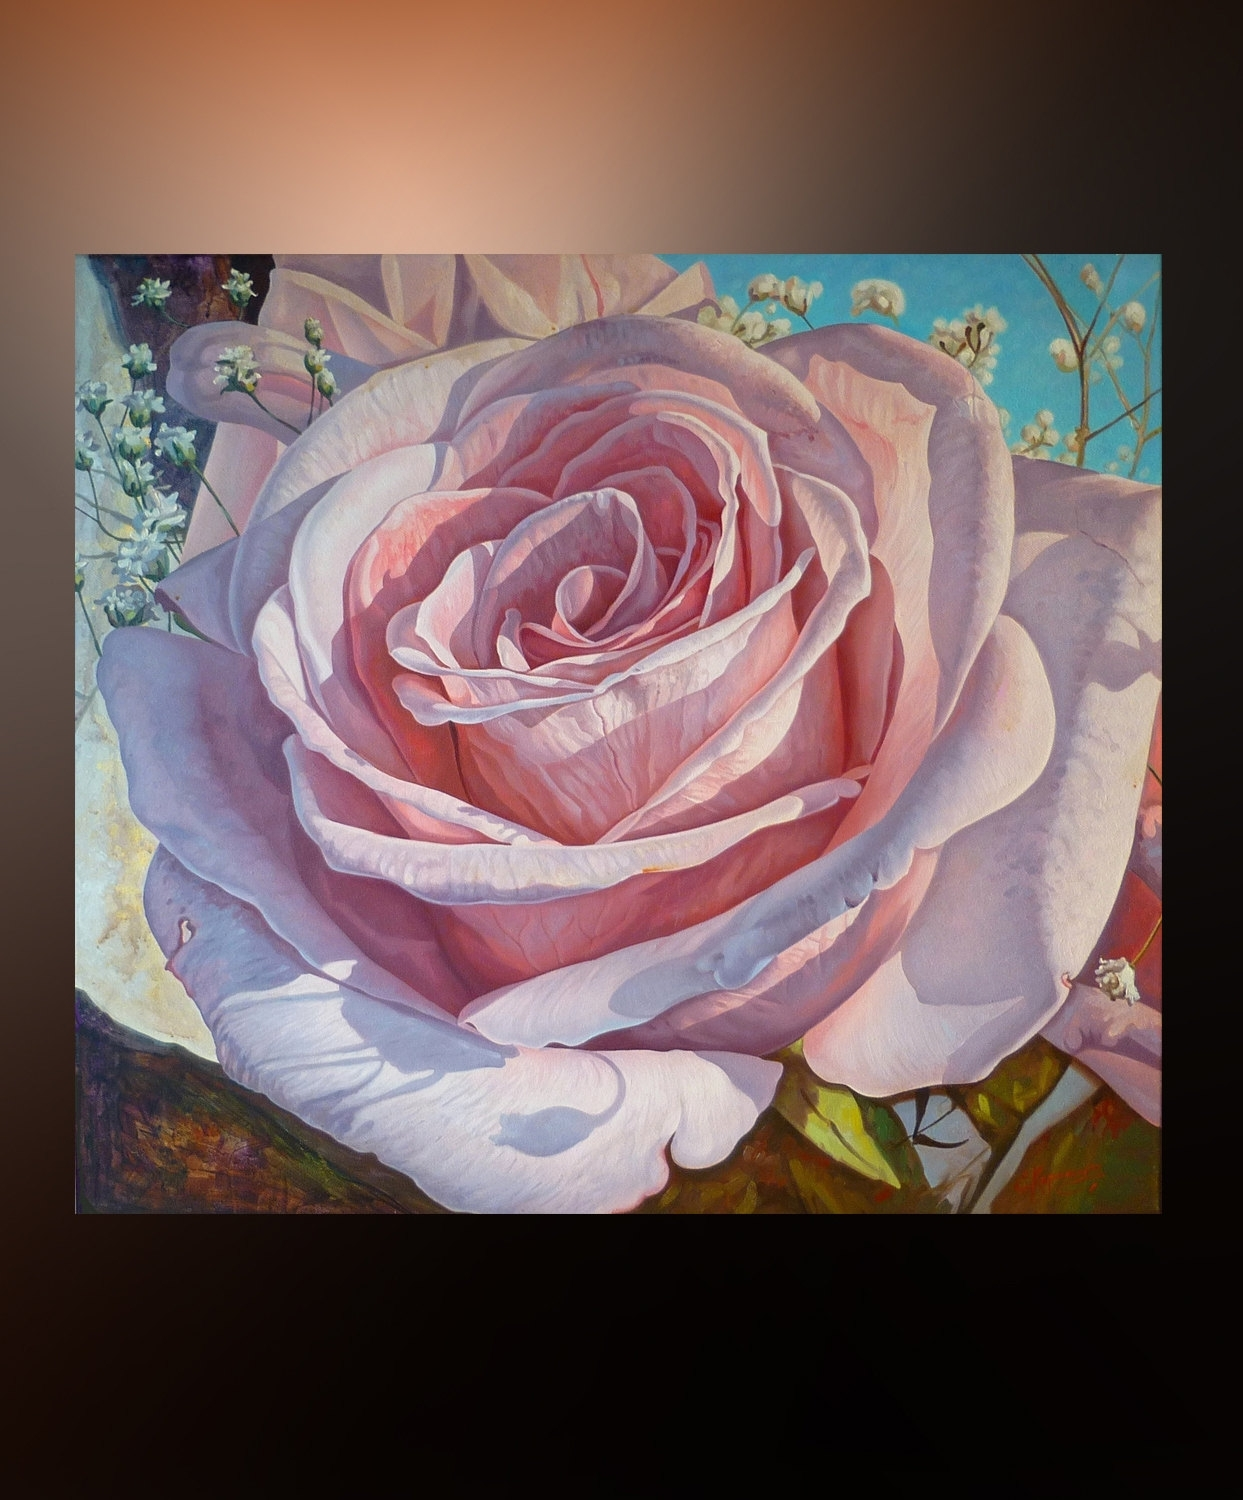 Flower Rose | Large Wall Art | Floral Painting For Bedroom | Oil Throughout Best And Newest Roses Canvas Wall Art (Gallery 9 of 15)